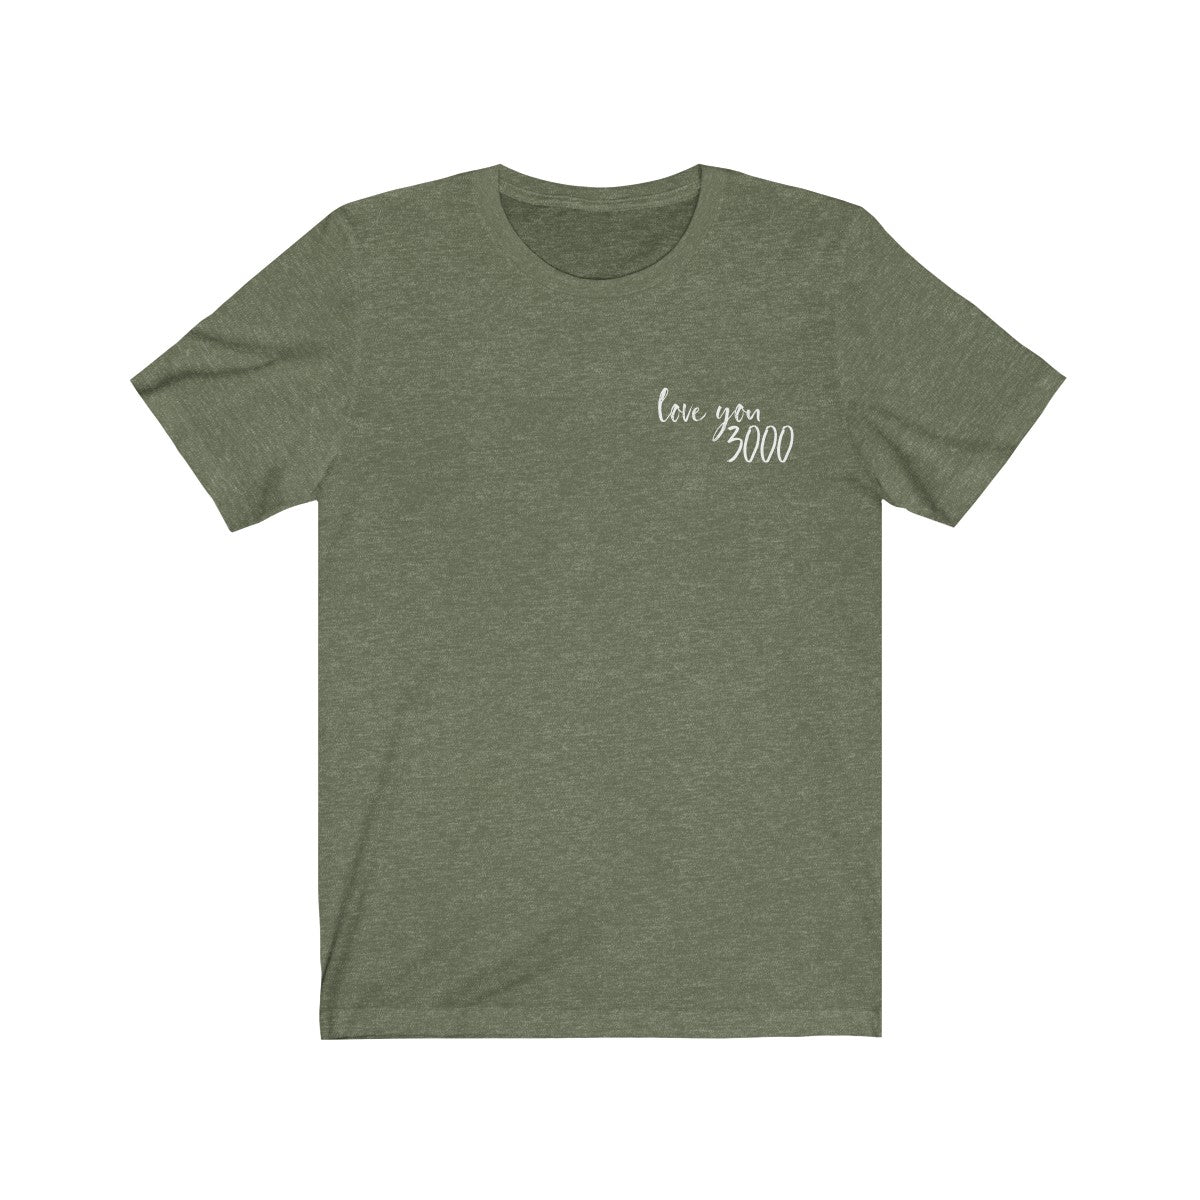 The Love You 3000 Tee